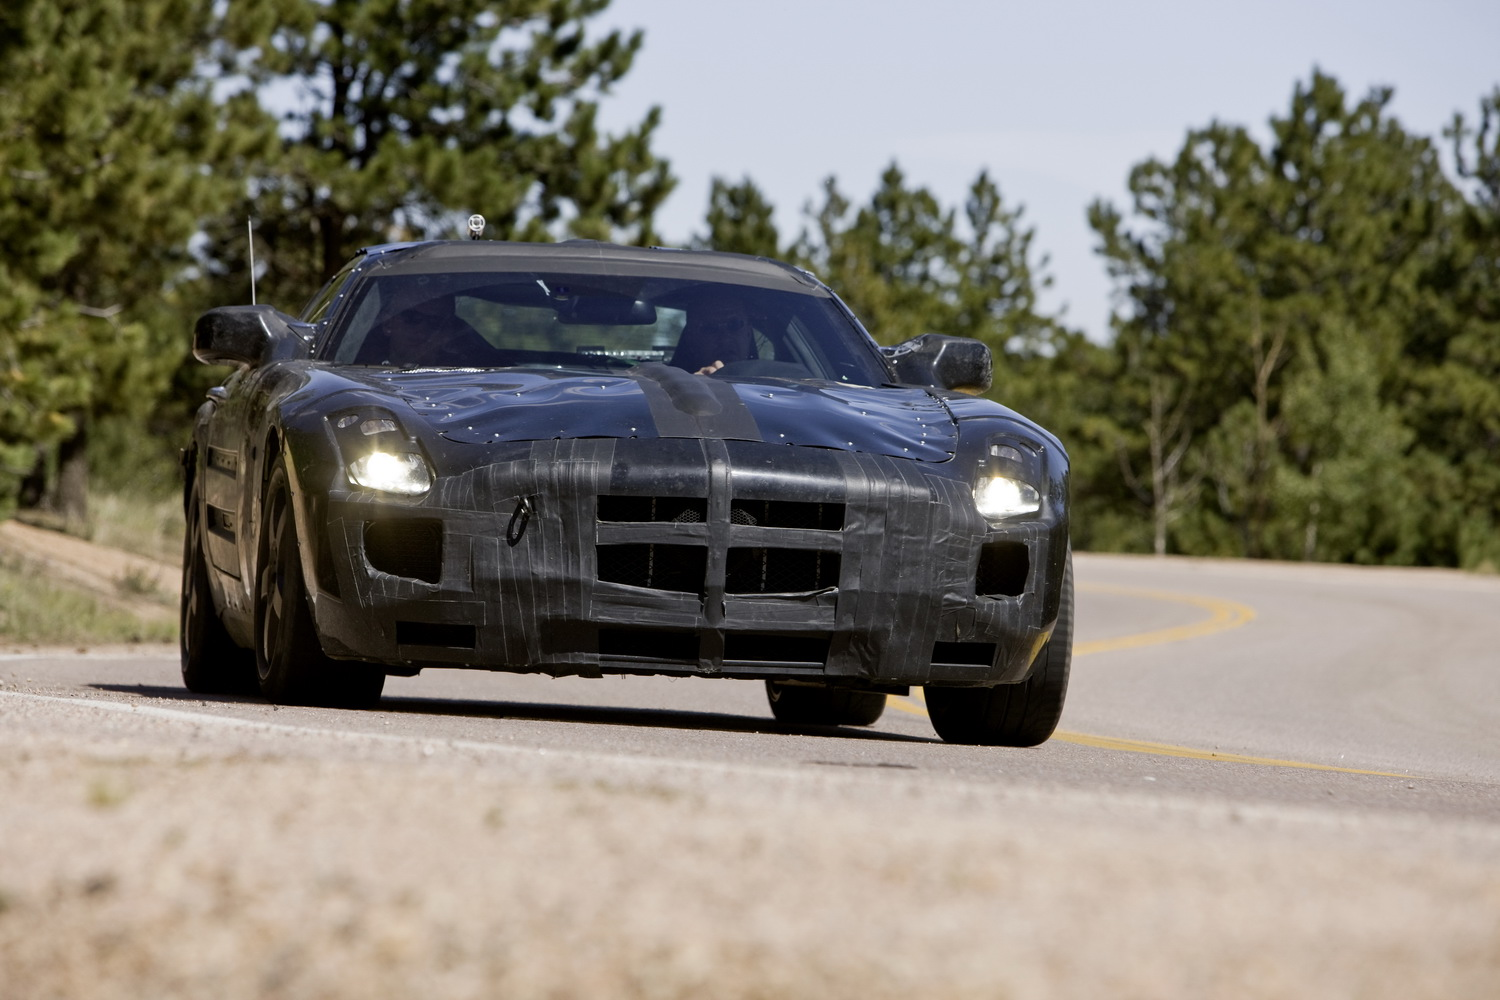 The Mercedes-Benz SLS AMG is